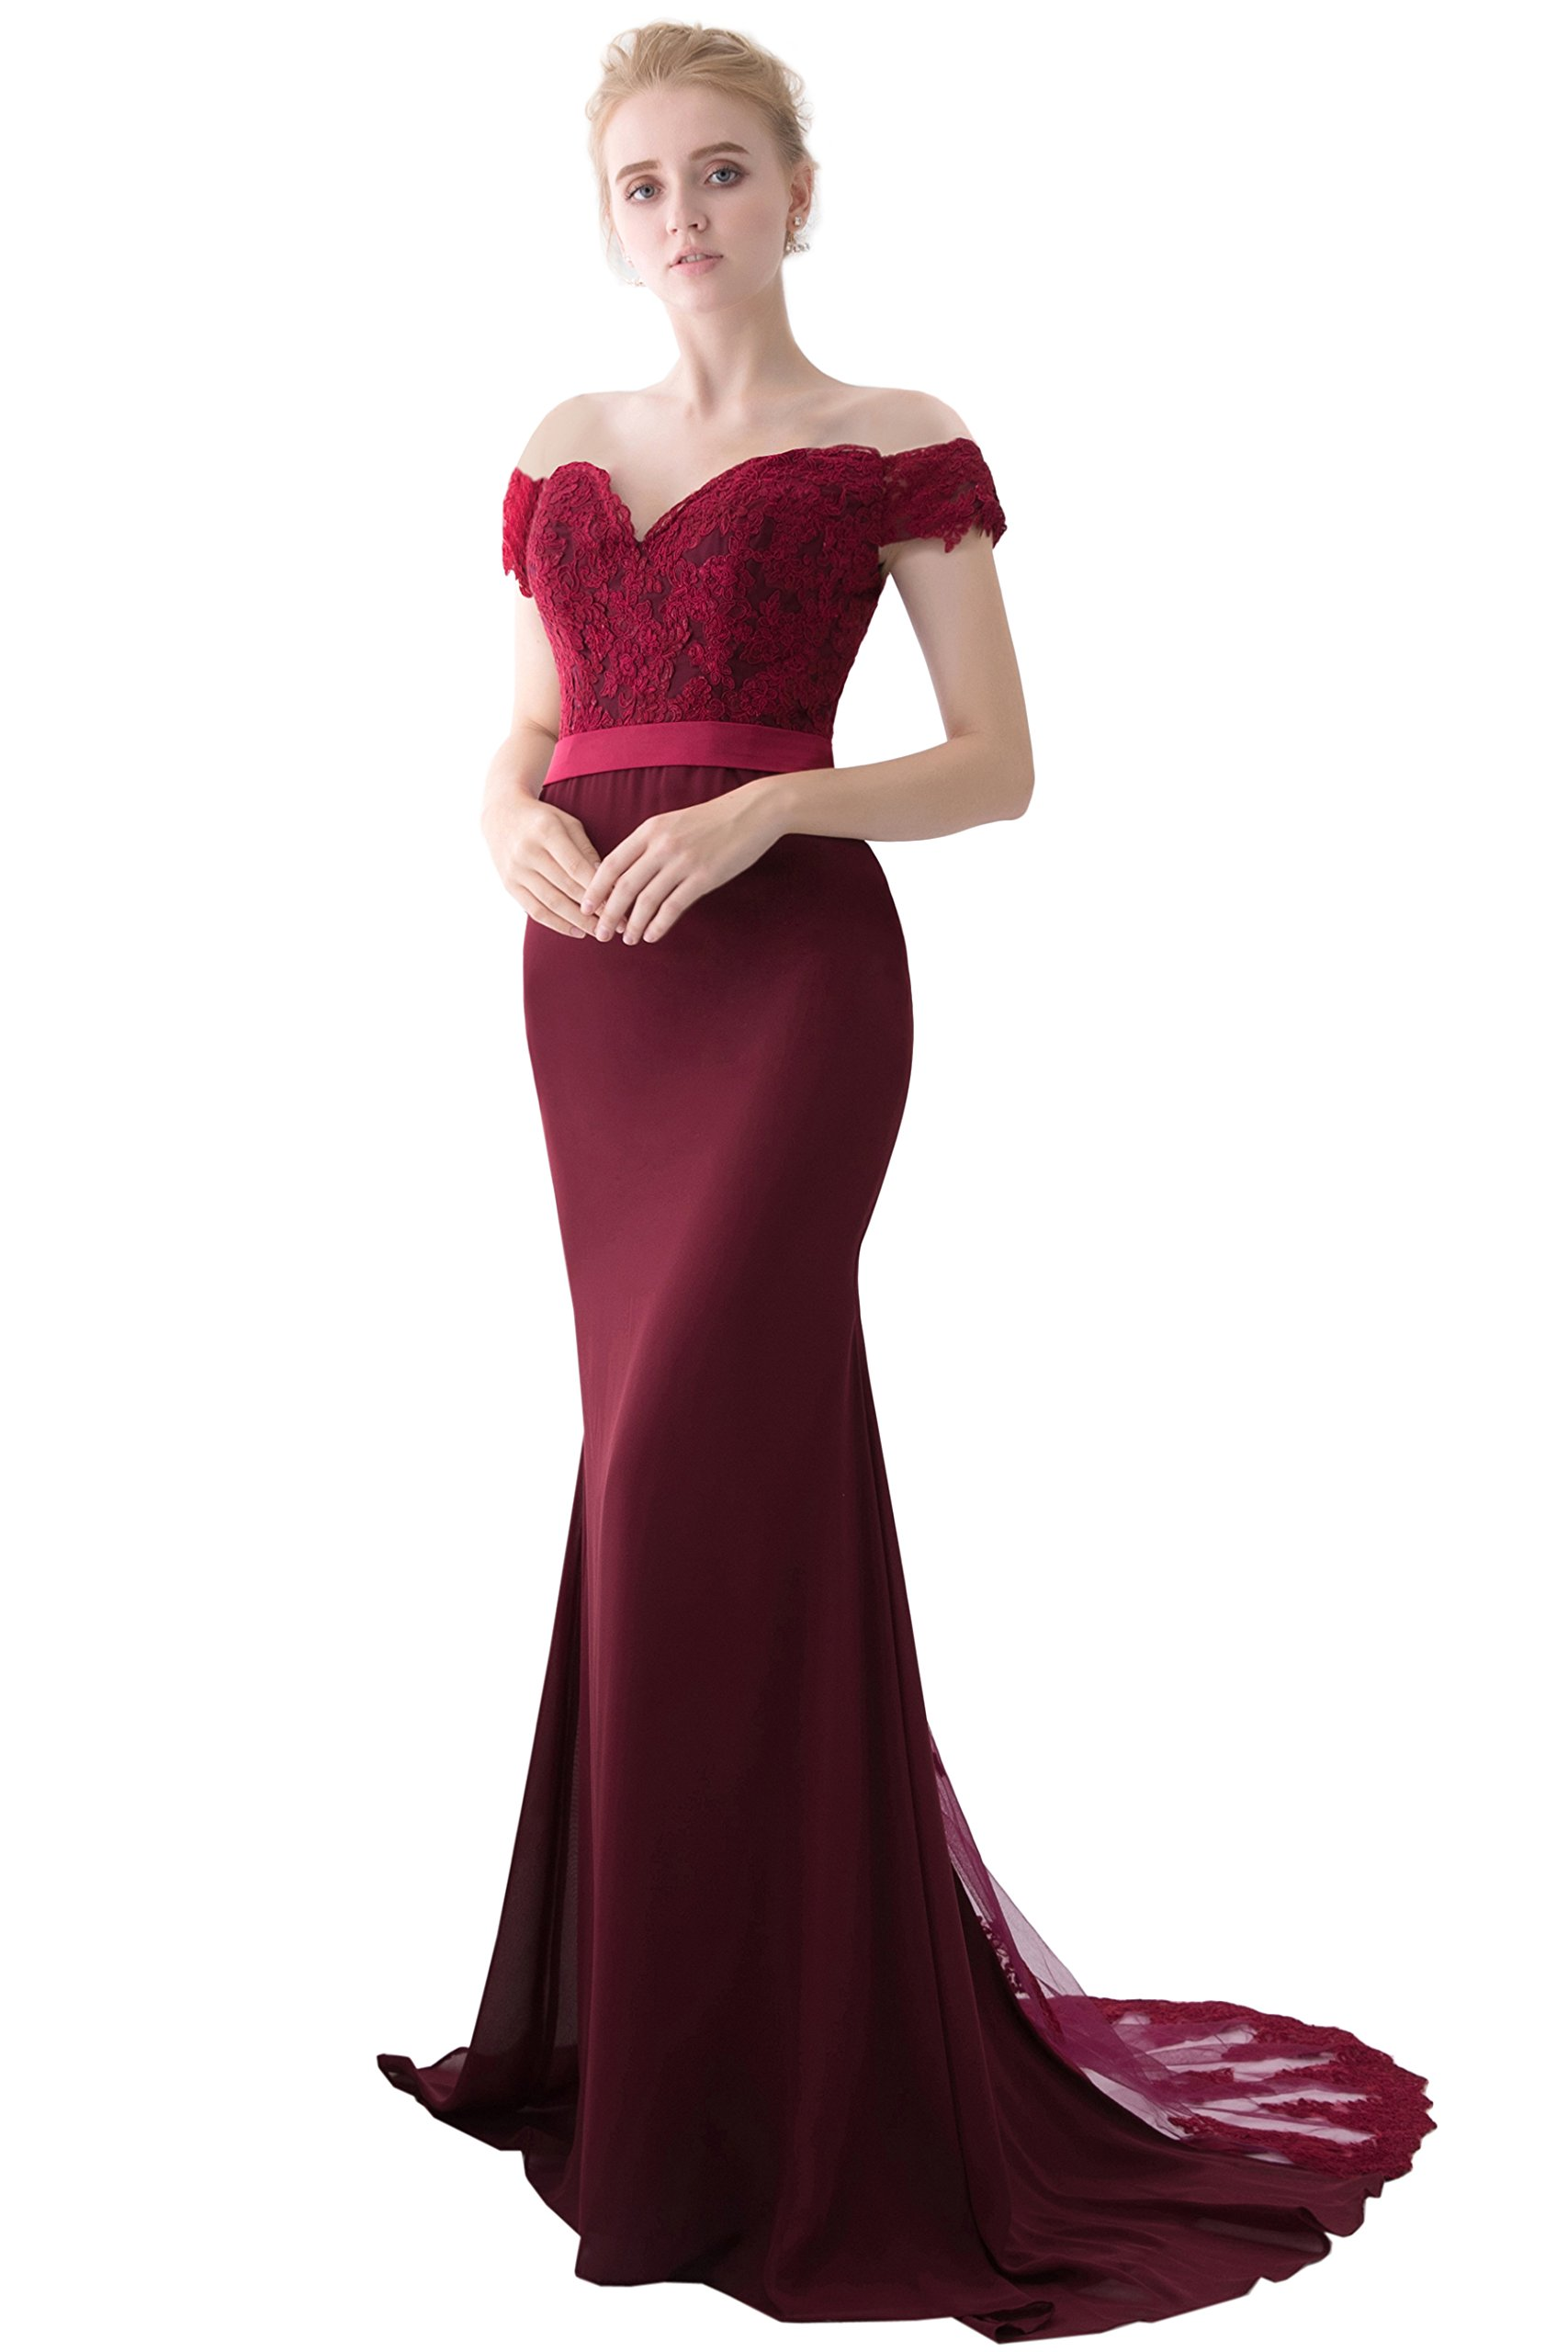 Miao Duo Women's Retro Long Mermaid Evening Gowns Formal Homecoming, Wine Red, Size 8